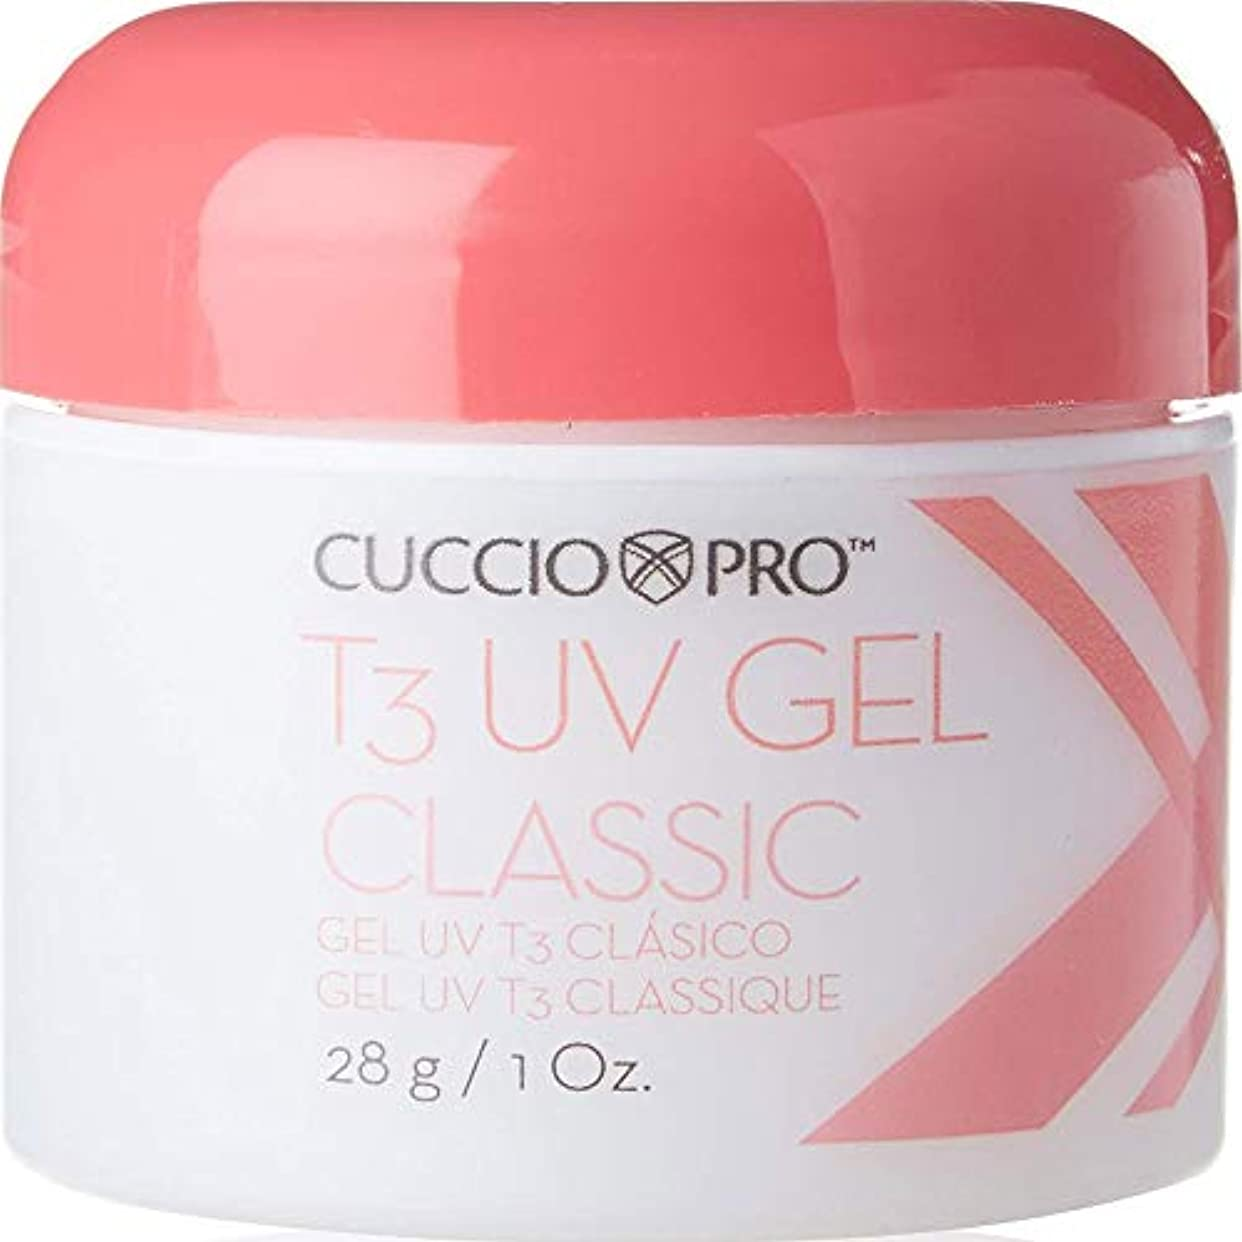 慈悲深い遠い残るCuccio Pro T3 UV Gel Classic Pink for High Shine Natural and Artificial Nails 28g